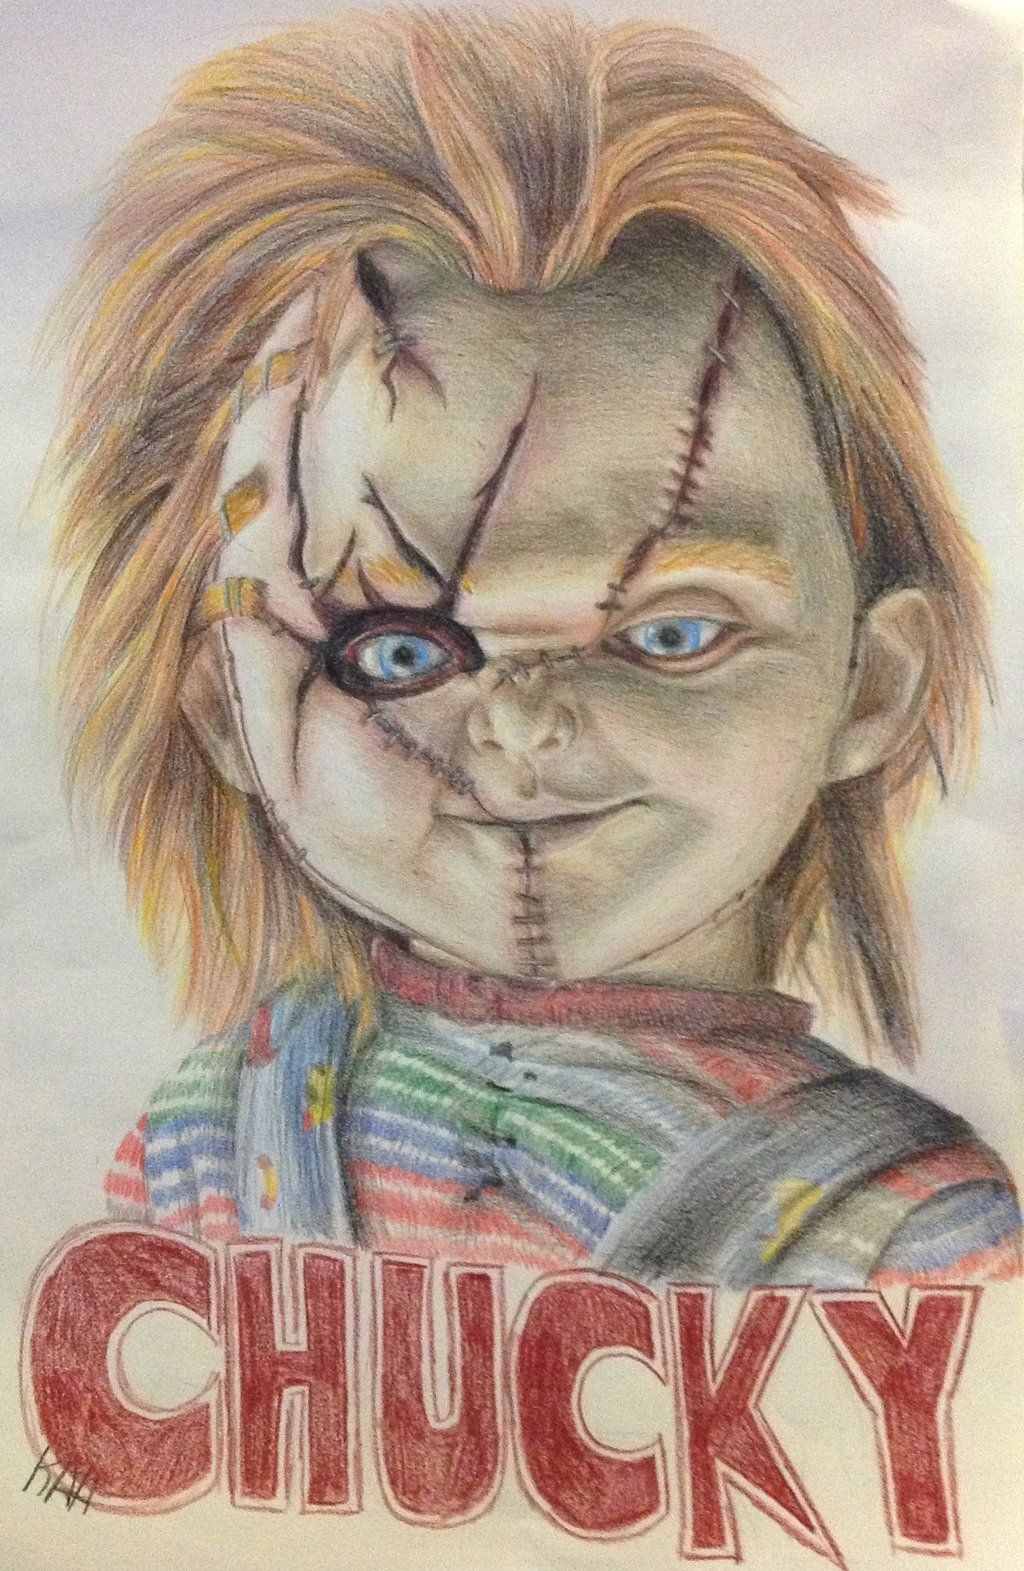 Chucky Poster By Khloealyssa Pictures Of Chucky Chucky Drawing Horror Artwork